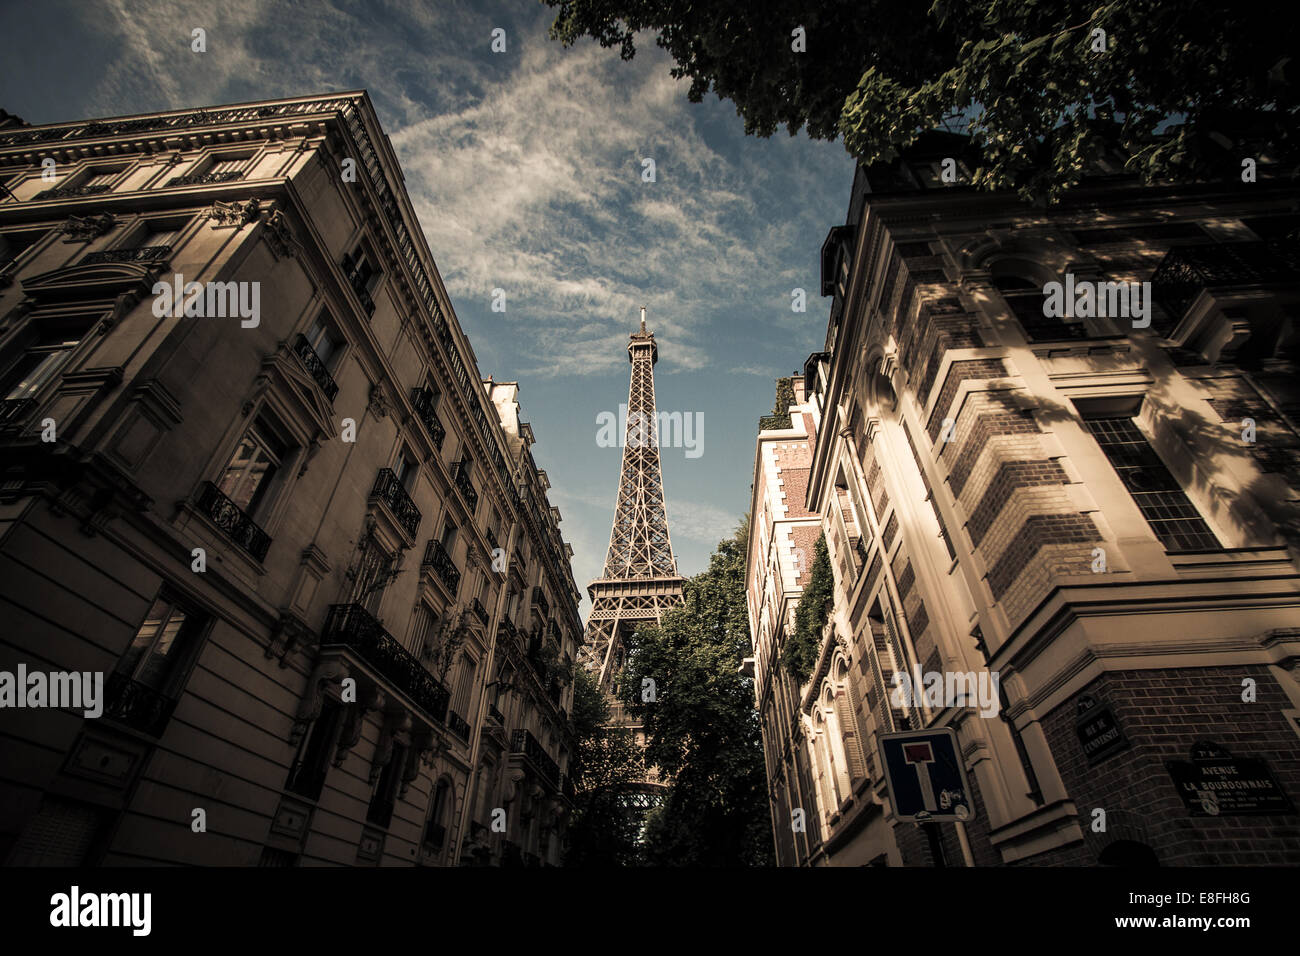 France, Paris, Tour Eiffel vu de street Photo Stock